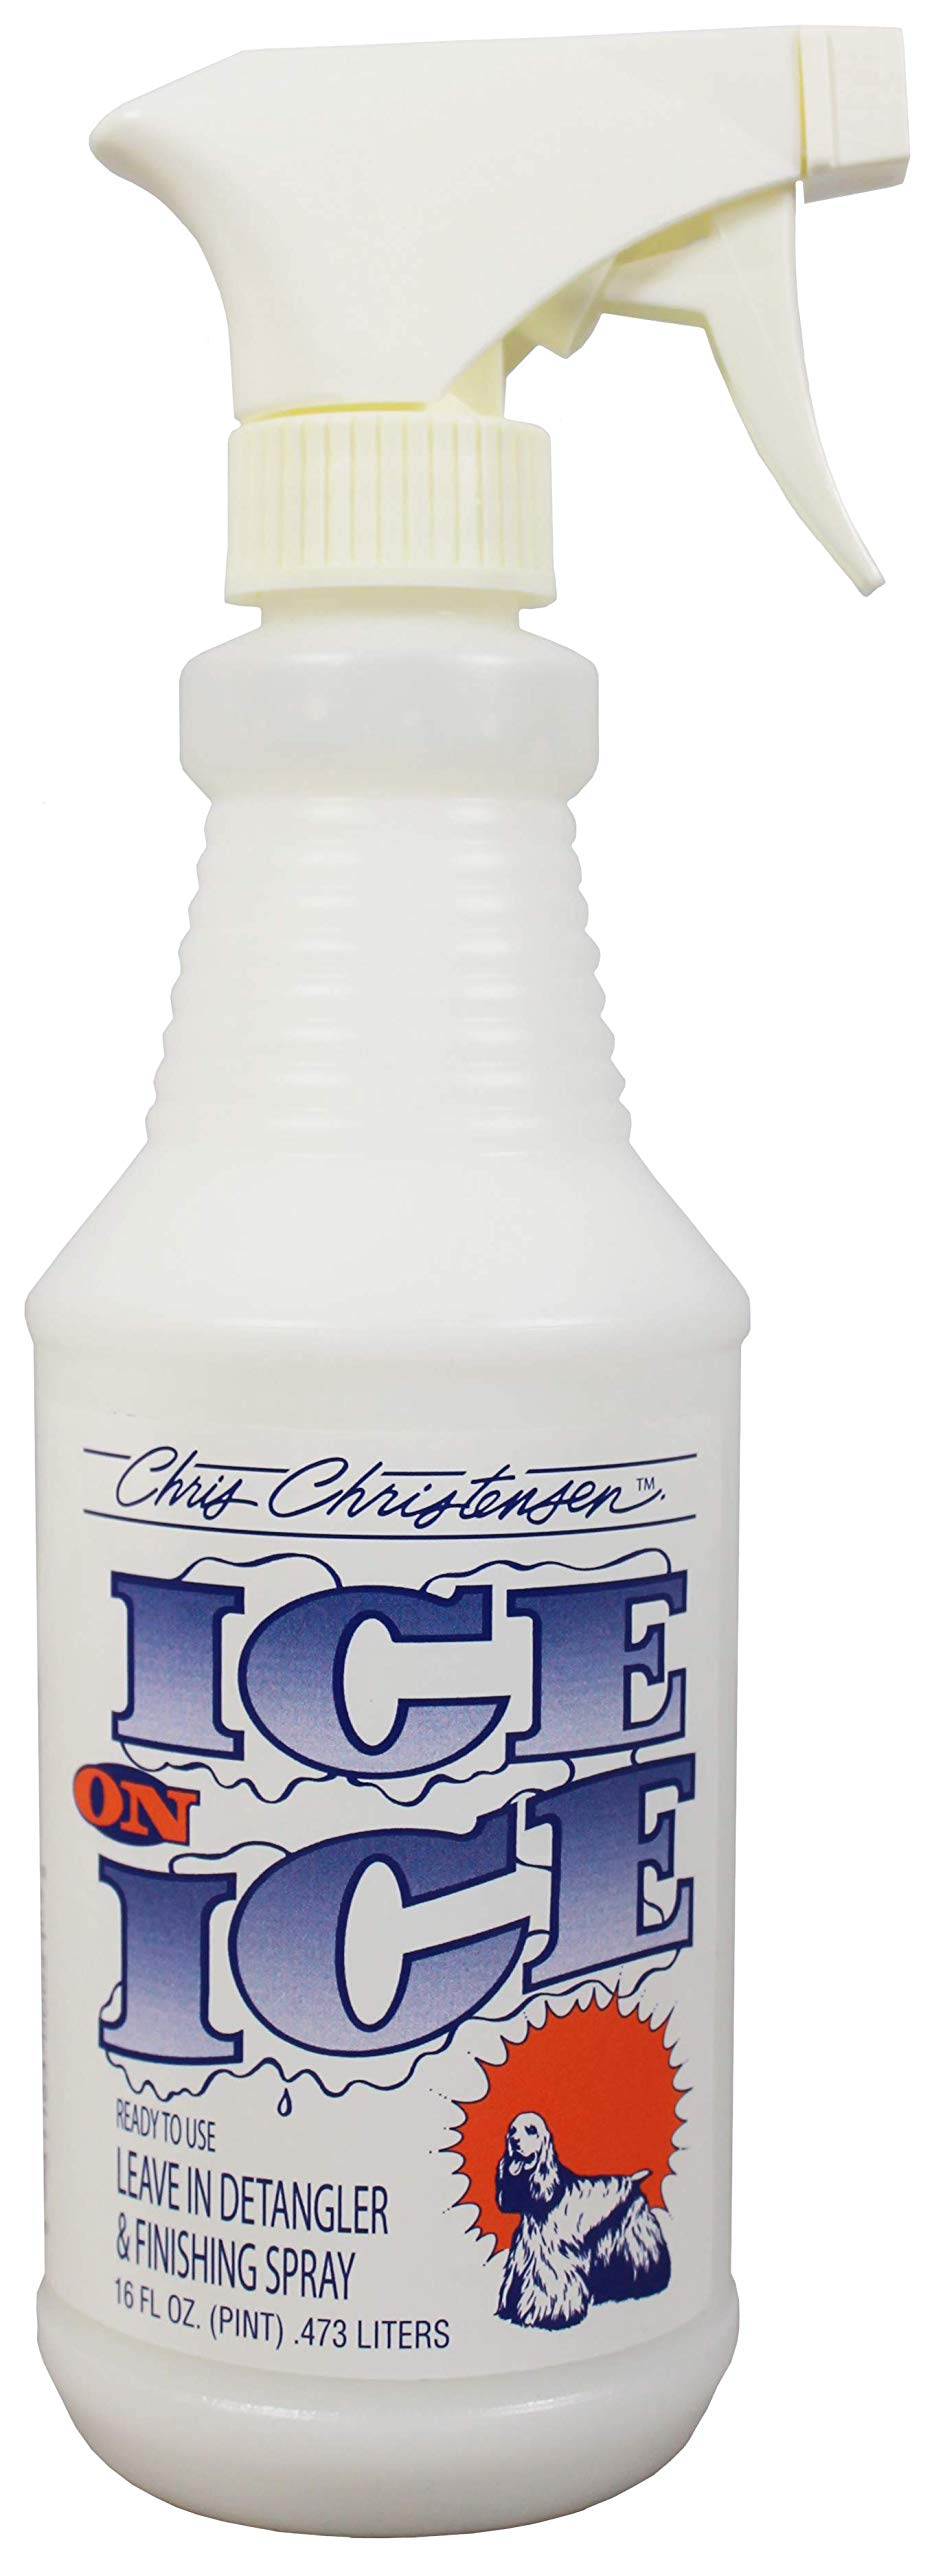 Chris Christensen Ice on Ice Conditioner with Sunscreen Ready to Use 16 oz